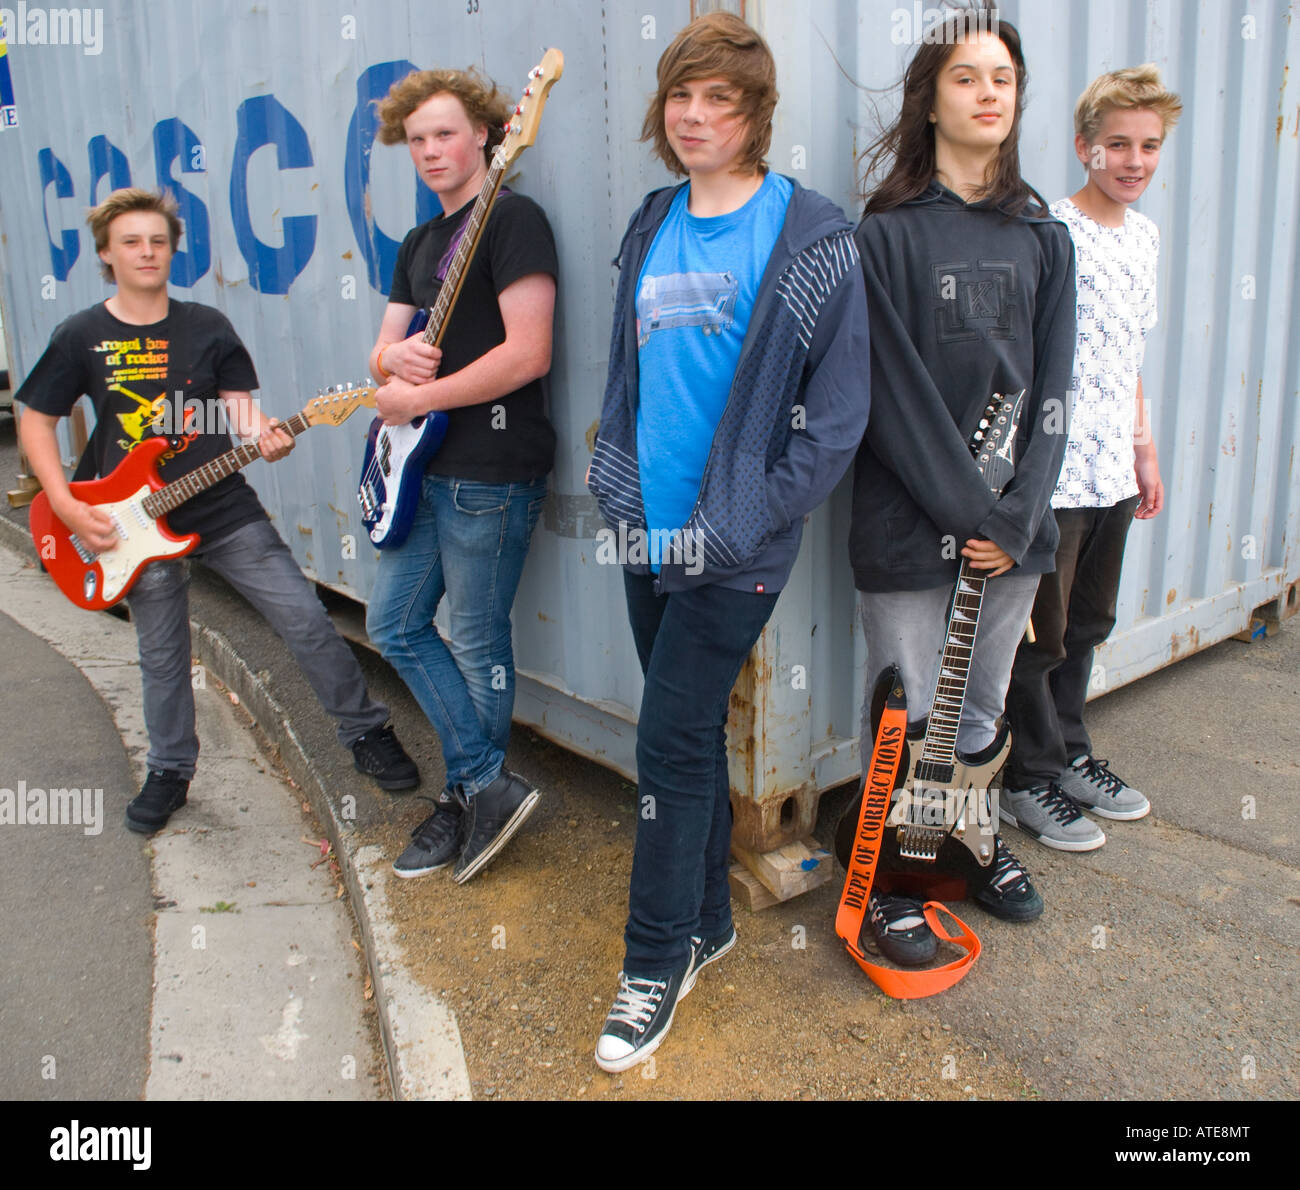 High school rock and roll band - Stock Image